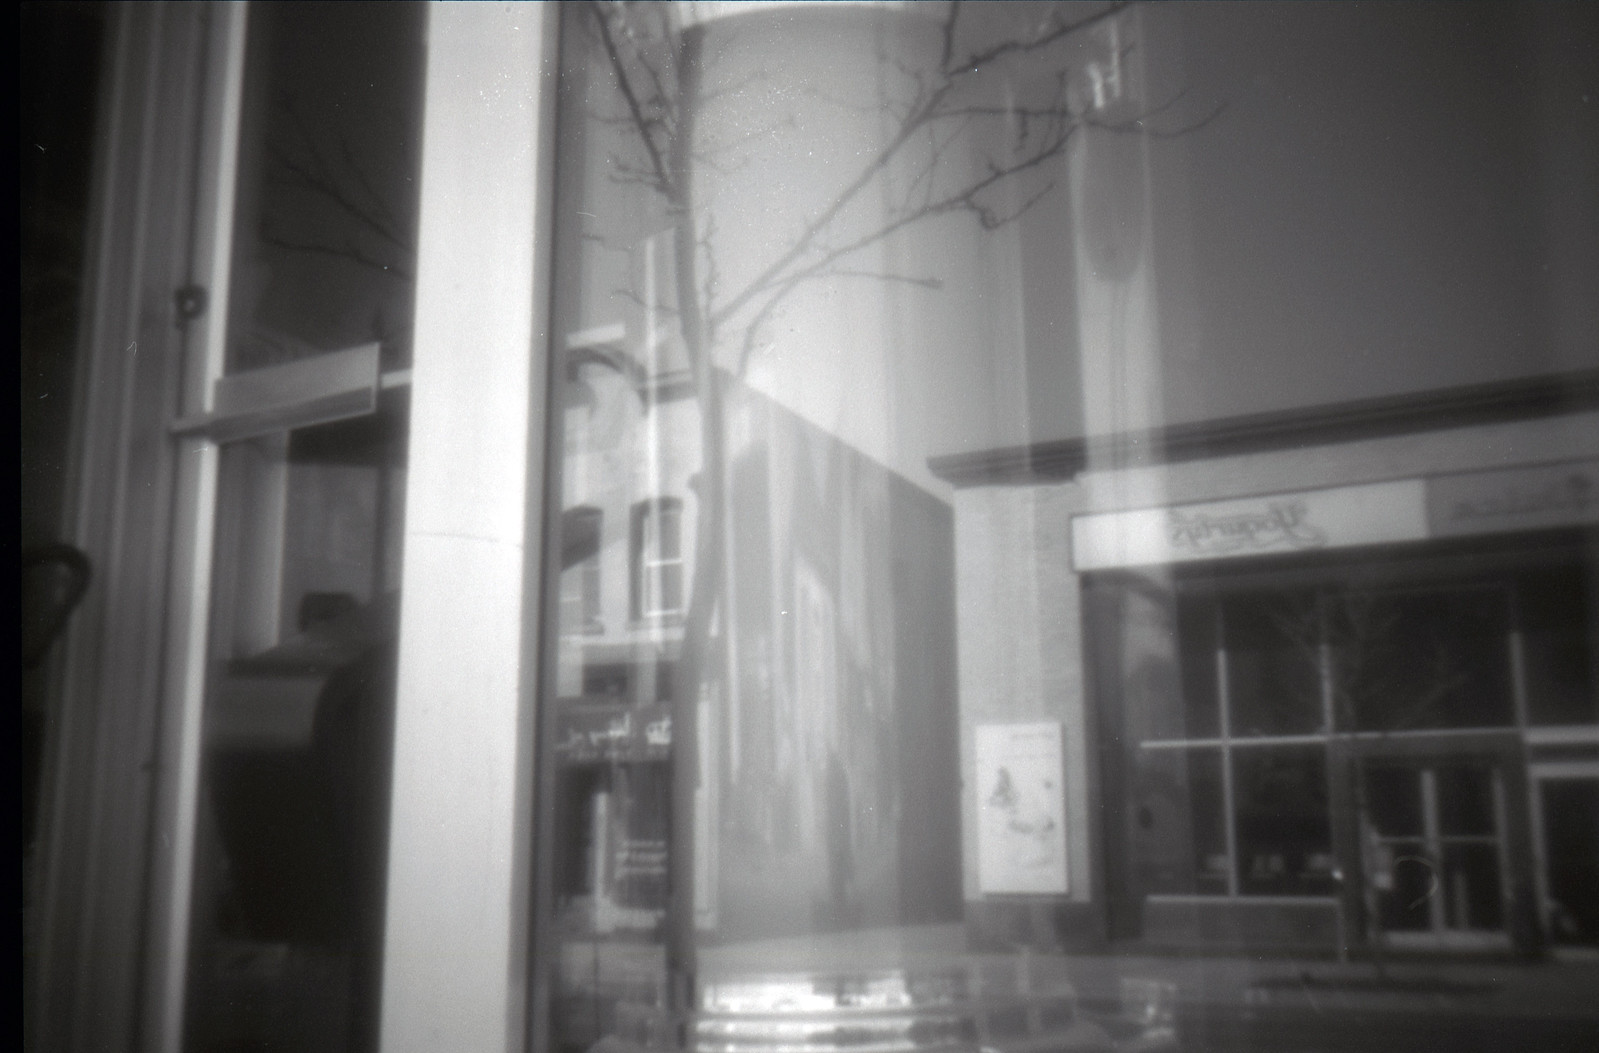 Wordwide Pinhole Photography Day - 26 April 2020